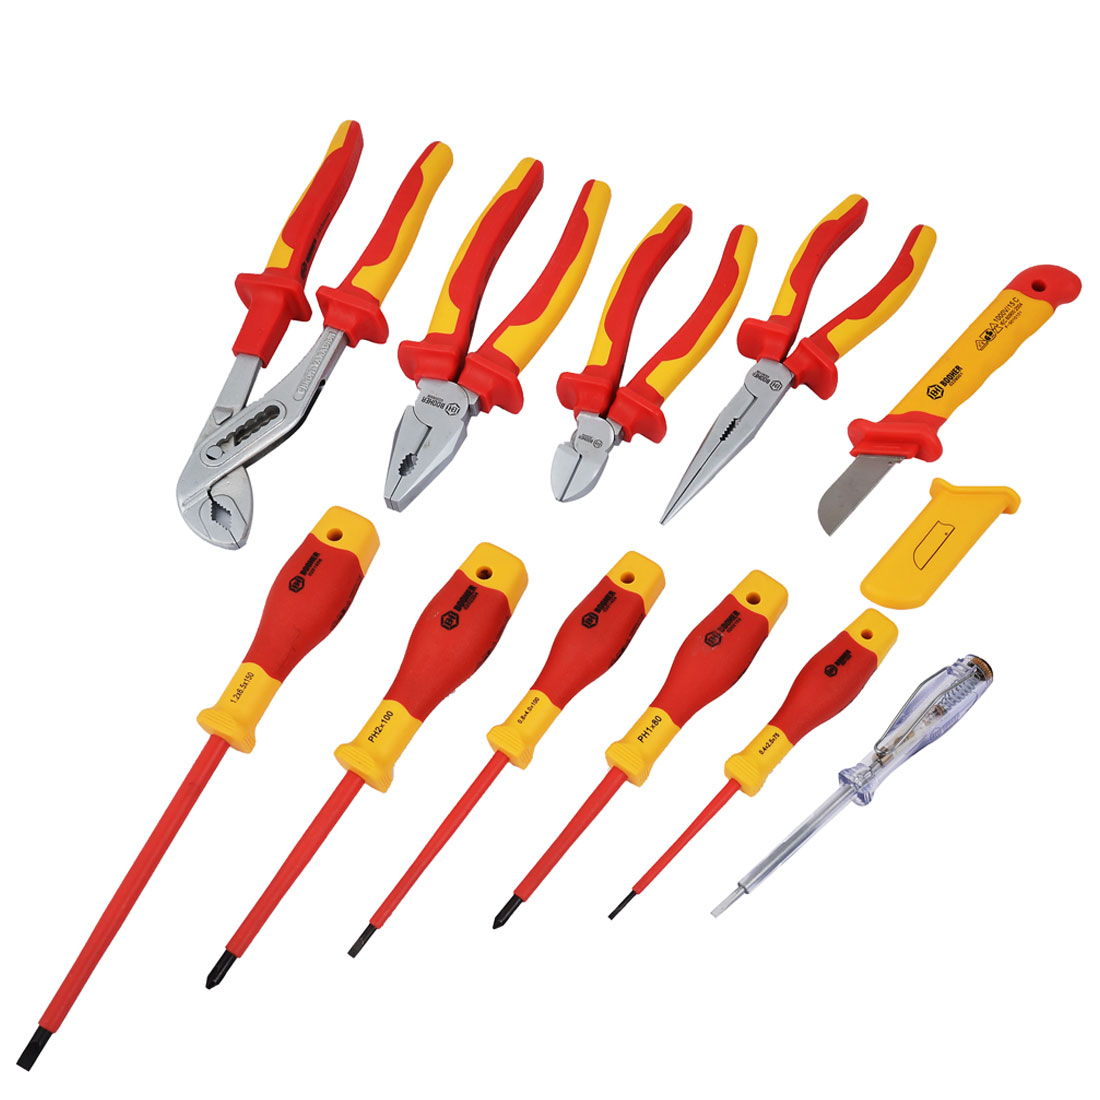 BOOHER Authorized 1000V VDE Insulated Electrician's Screwdriver Pliers Tool Set 11pcs